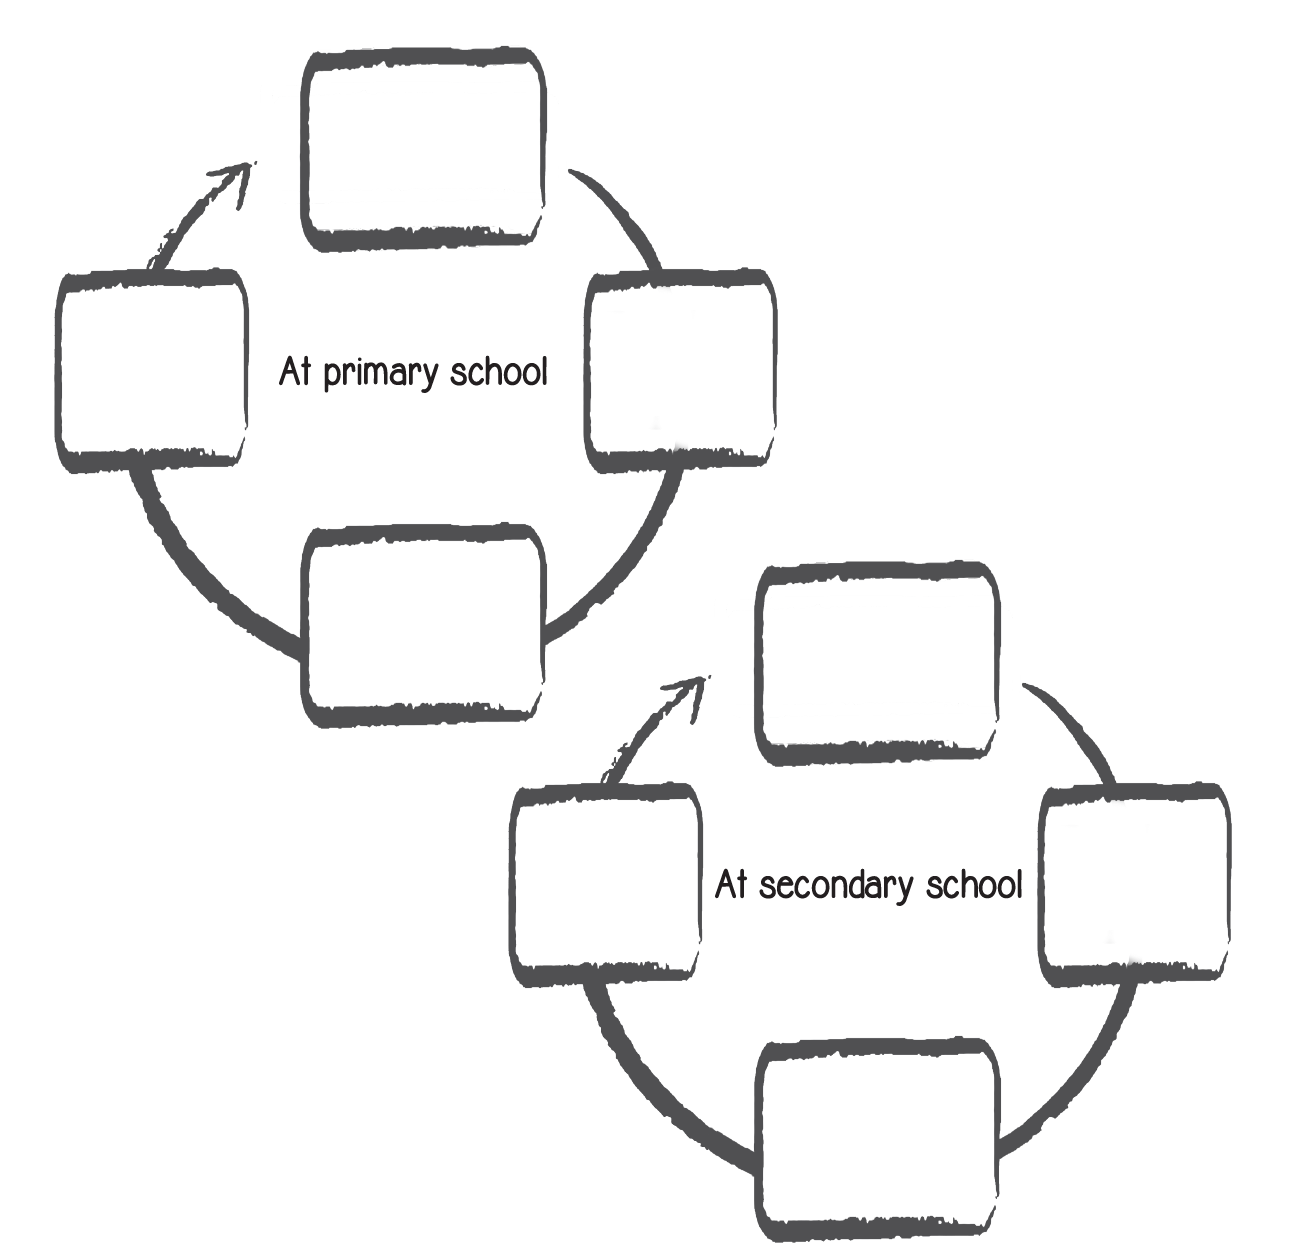 Depicts circle of support template for primary/secondary